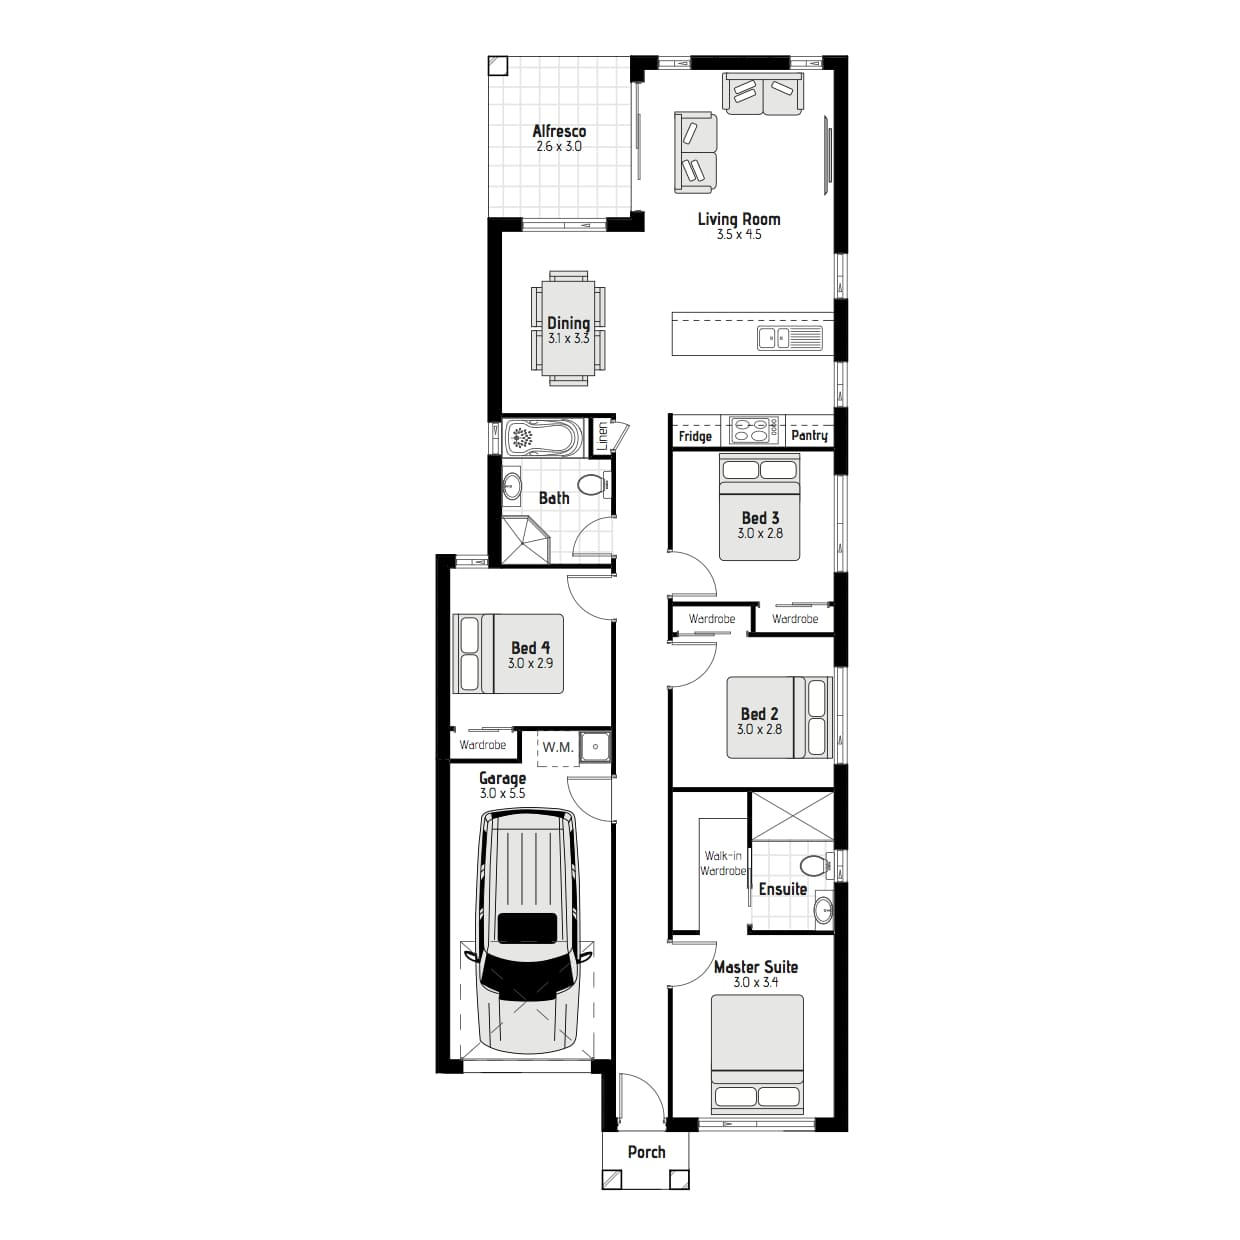 L8185416 AUSTRAL NSW 2179 - Floor plan